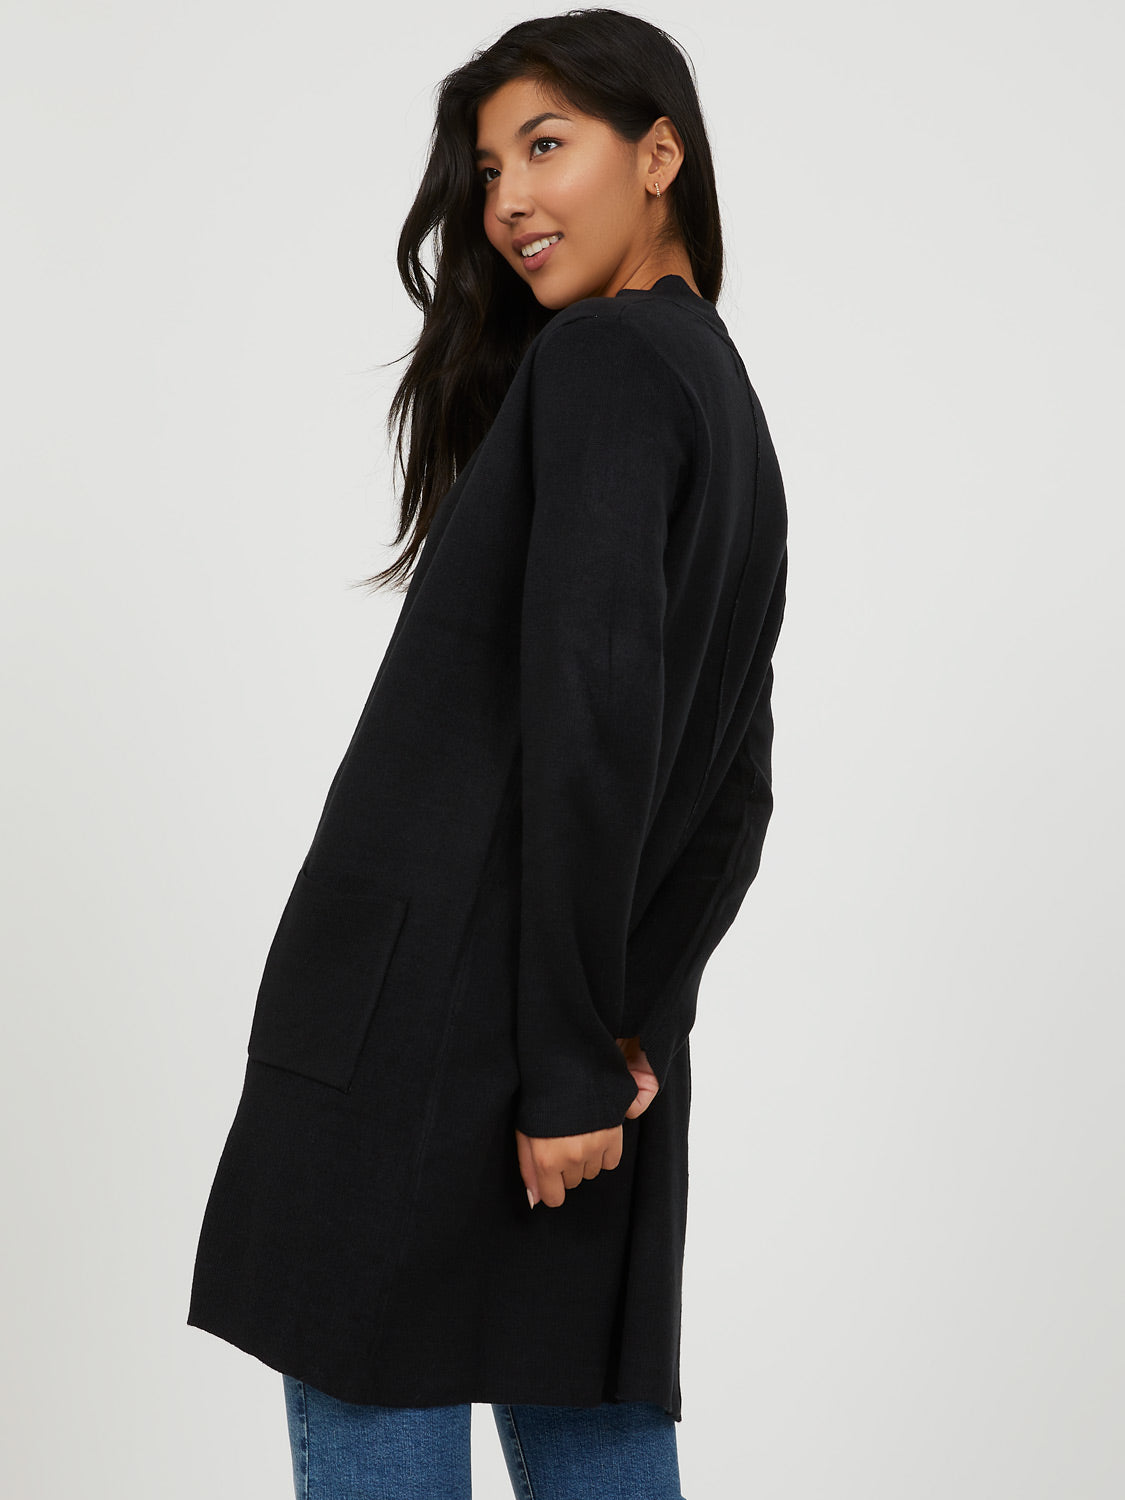 Manteau-cardigan long